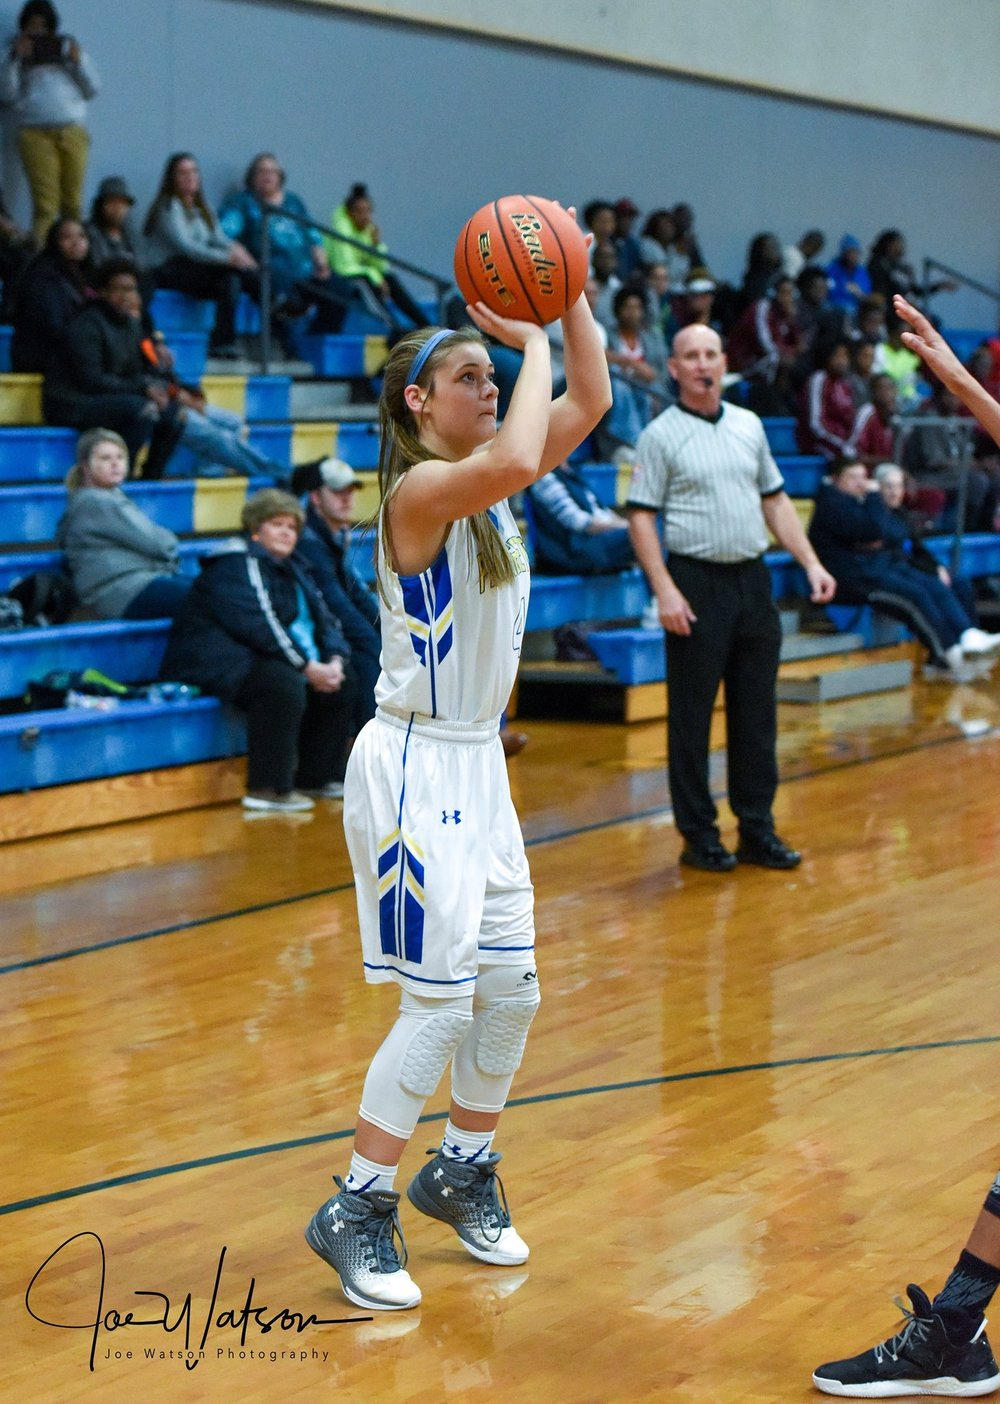 (Photo by Joe Watson) Emma Stewart taking a shot against LE on Friday night.